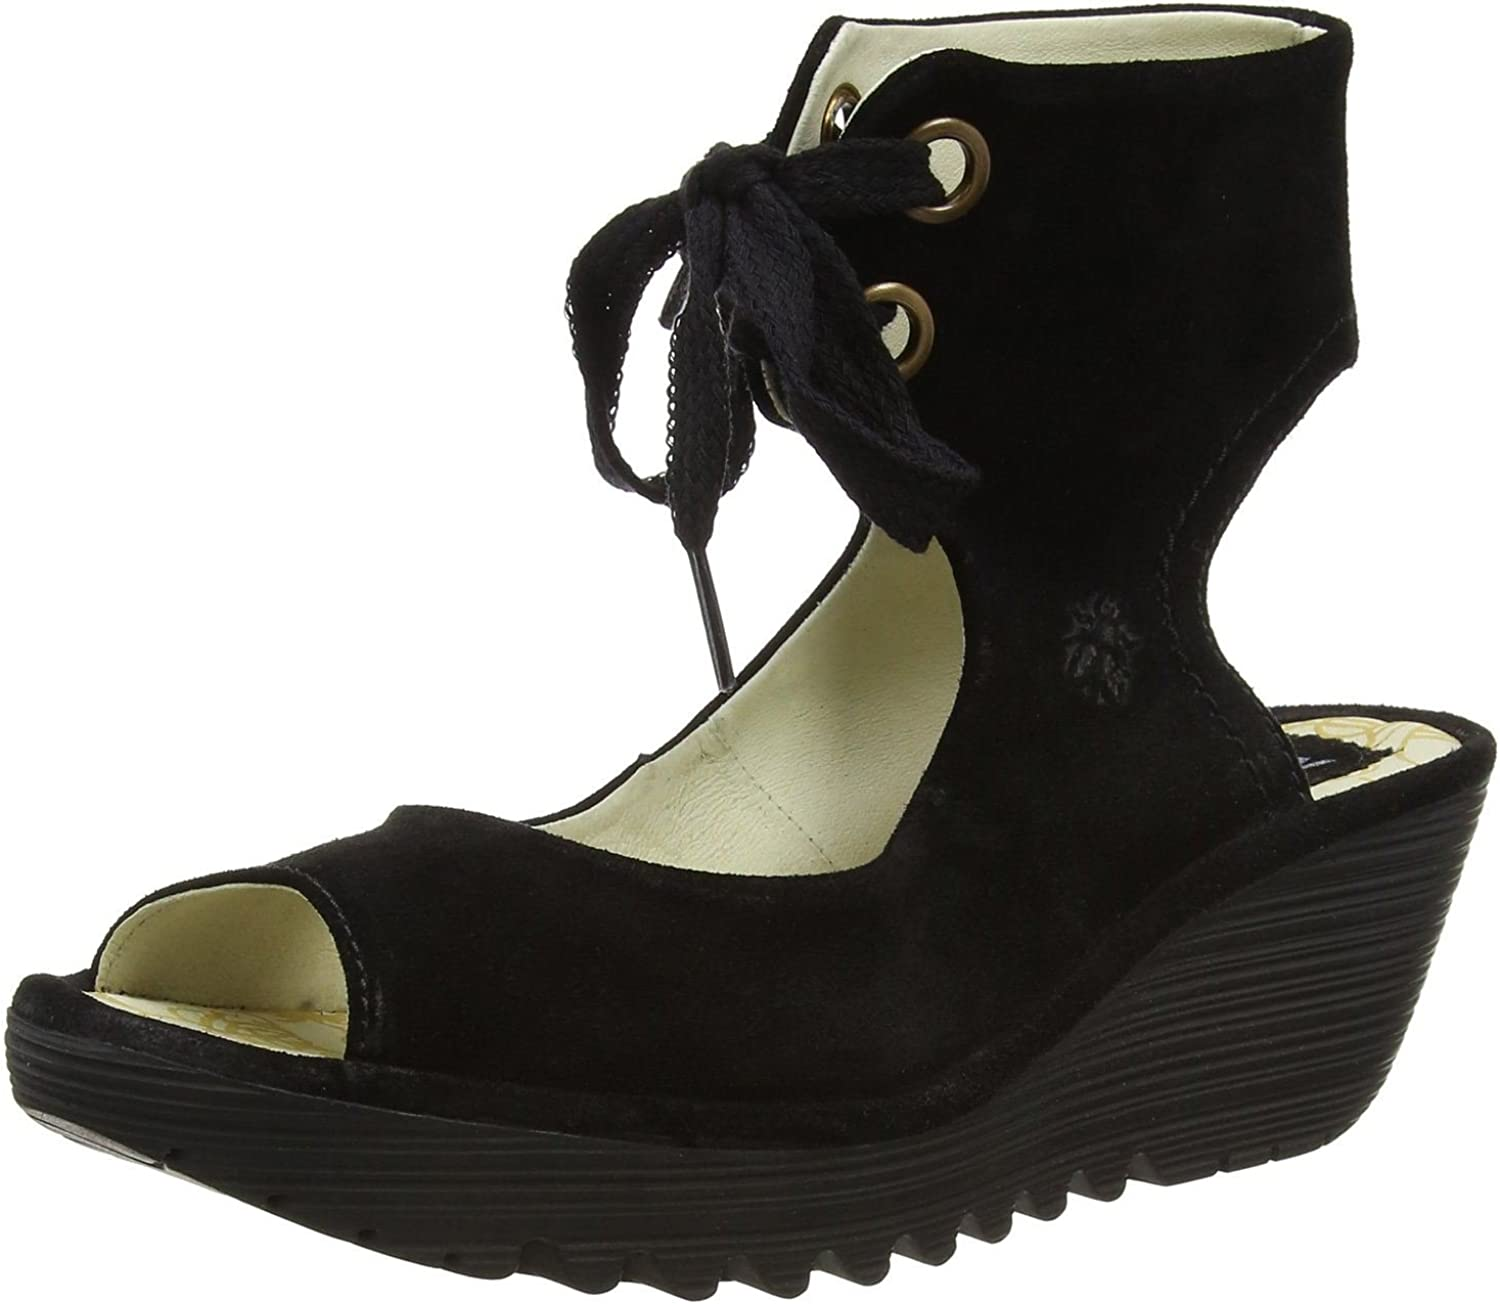 Fly London Yaffa Black Oil Suede Womens Wedge Sandals shoes